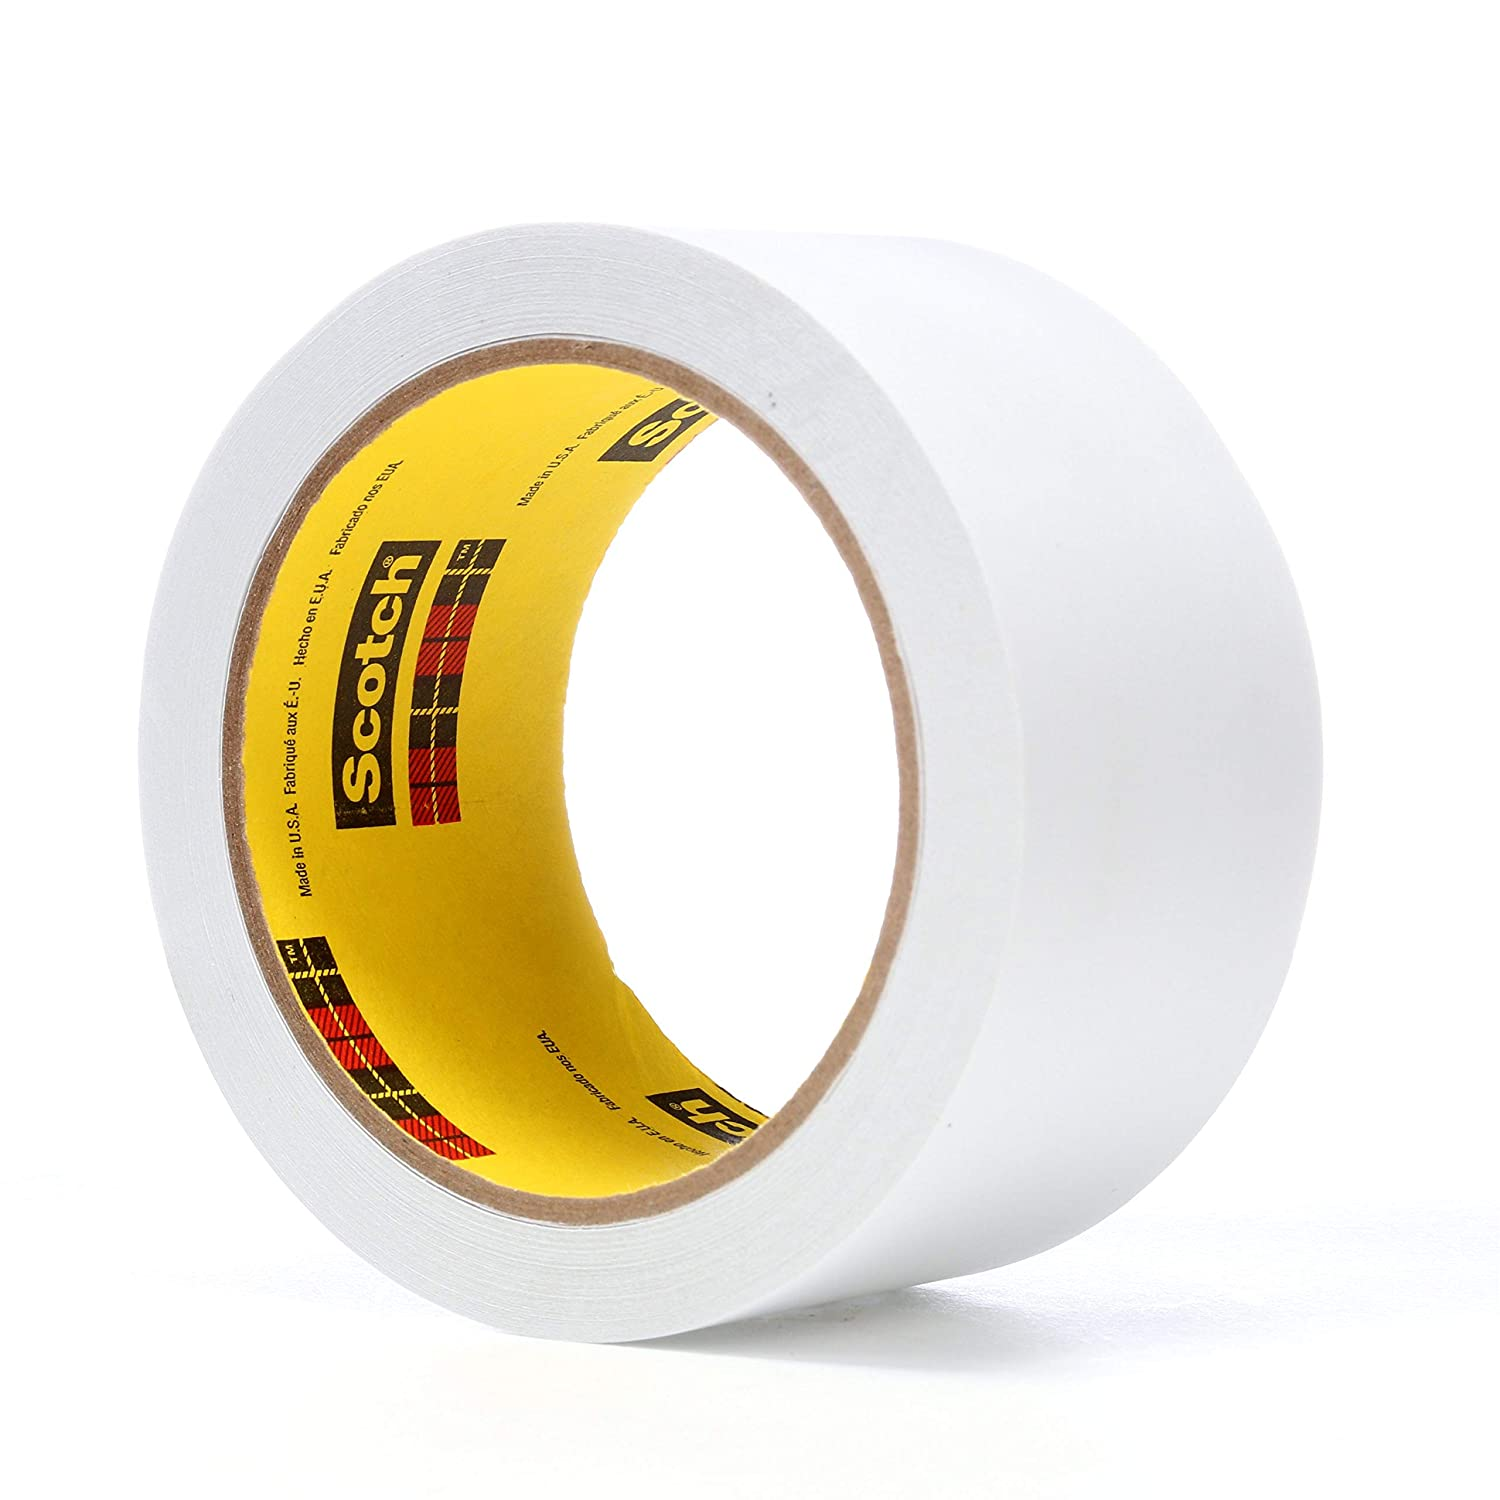 3M Low Tack Paper Tape 3051, White, 2 in x 36 yd, 3.3 mil, 24 Rolls per case